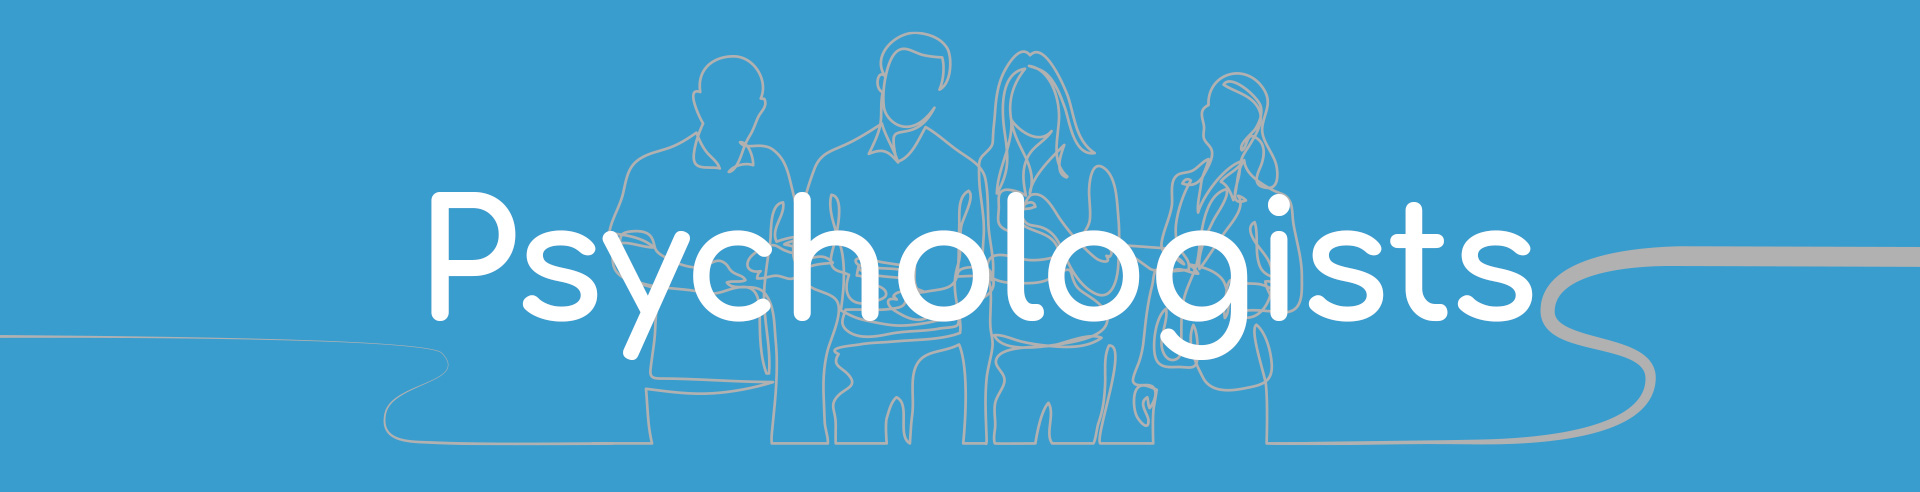 Fully qualified psychologists and psychiatrists